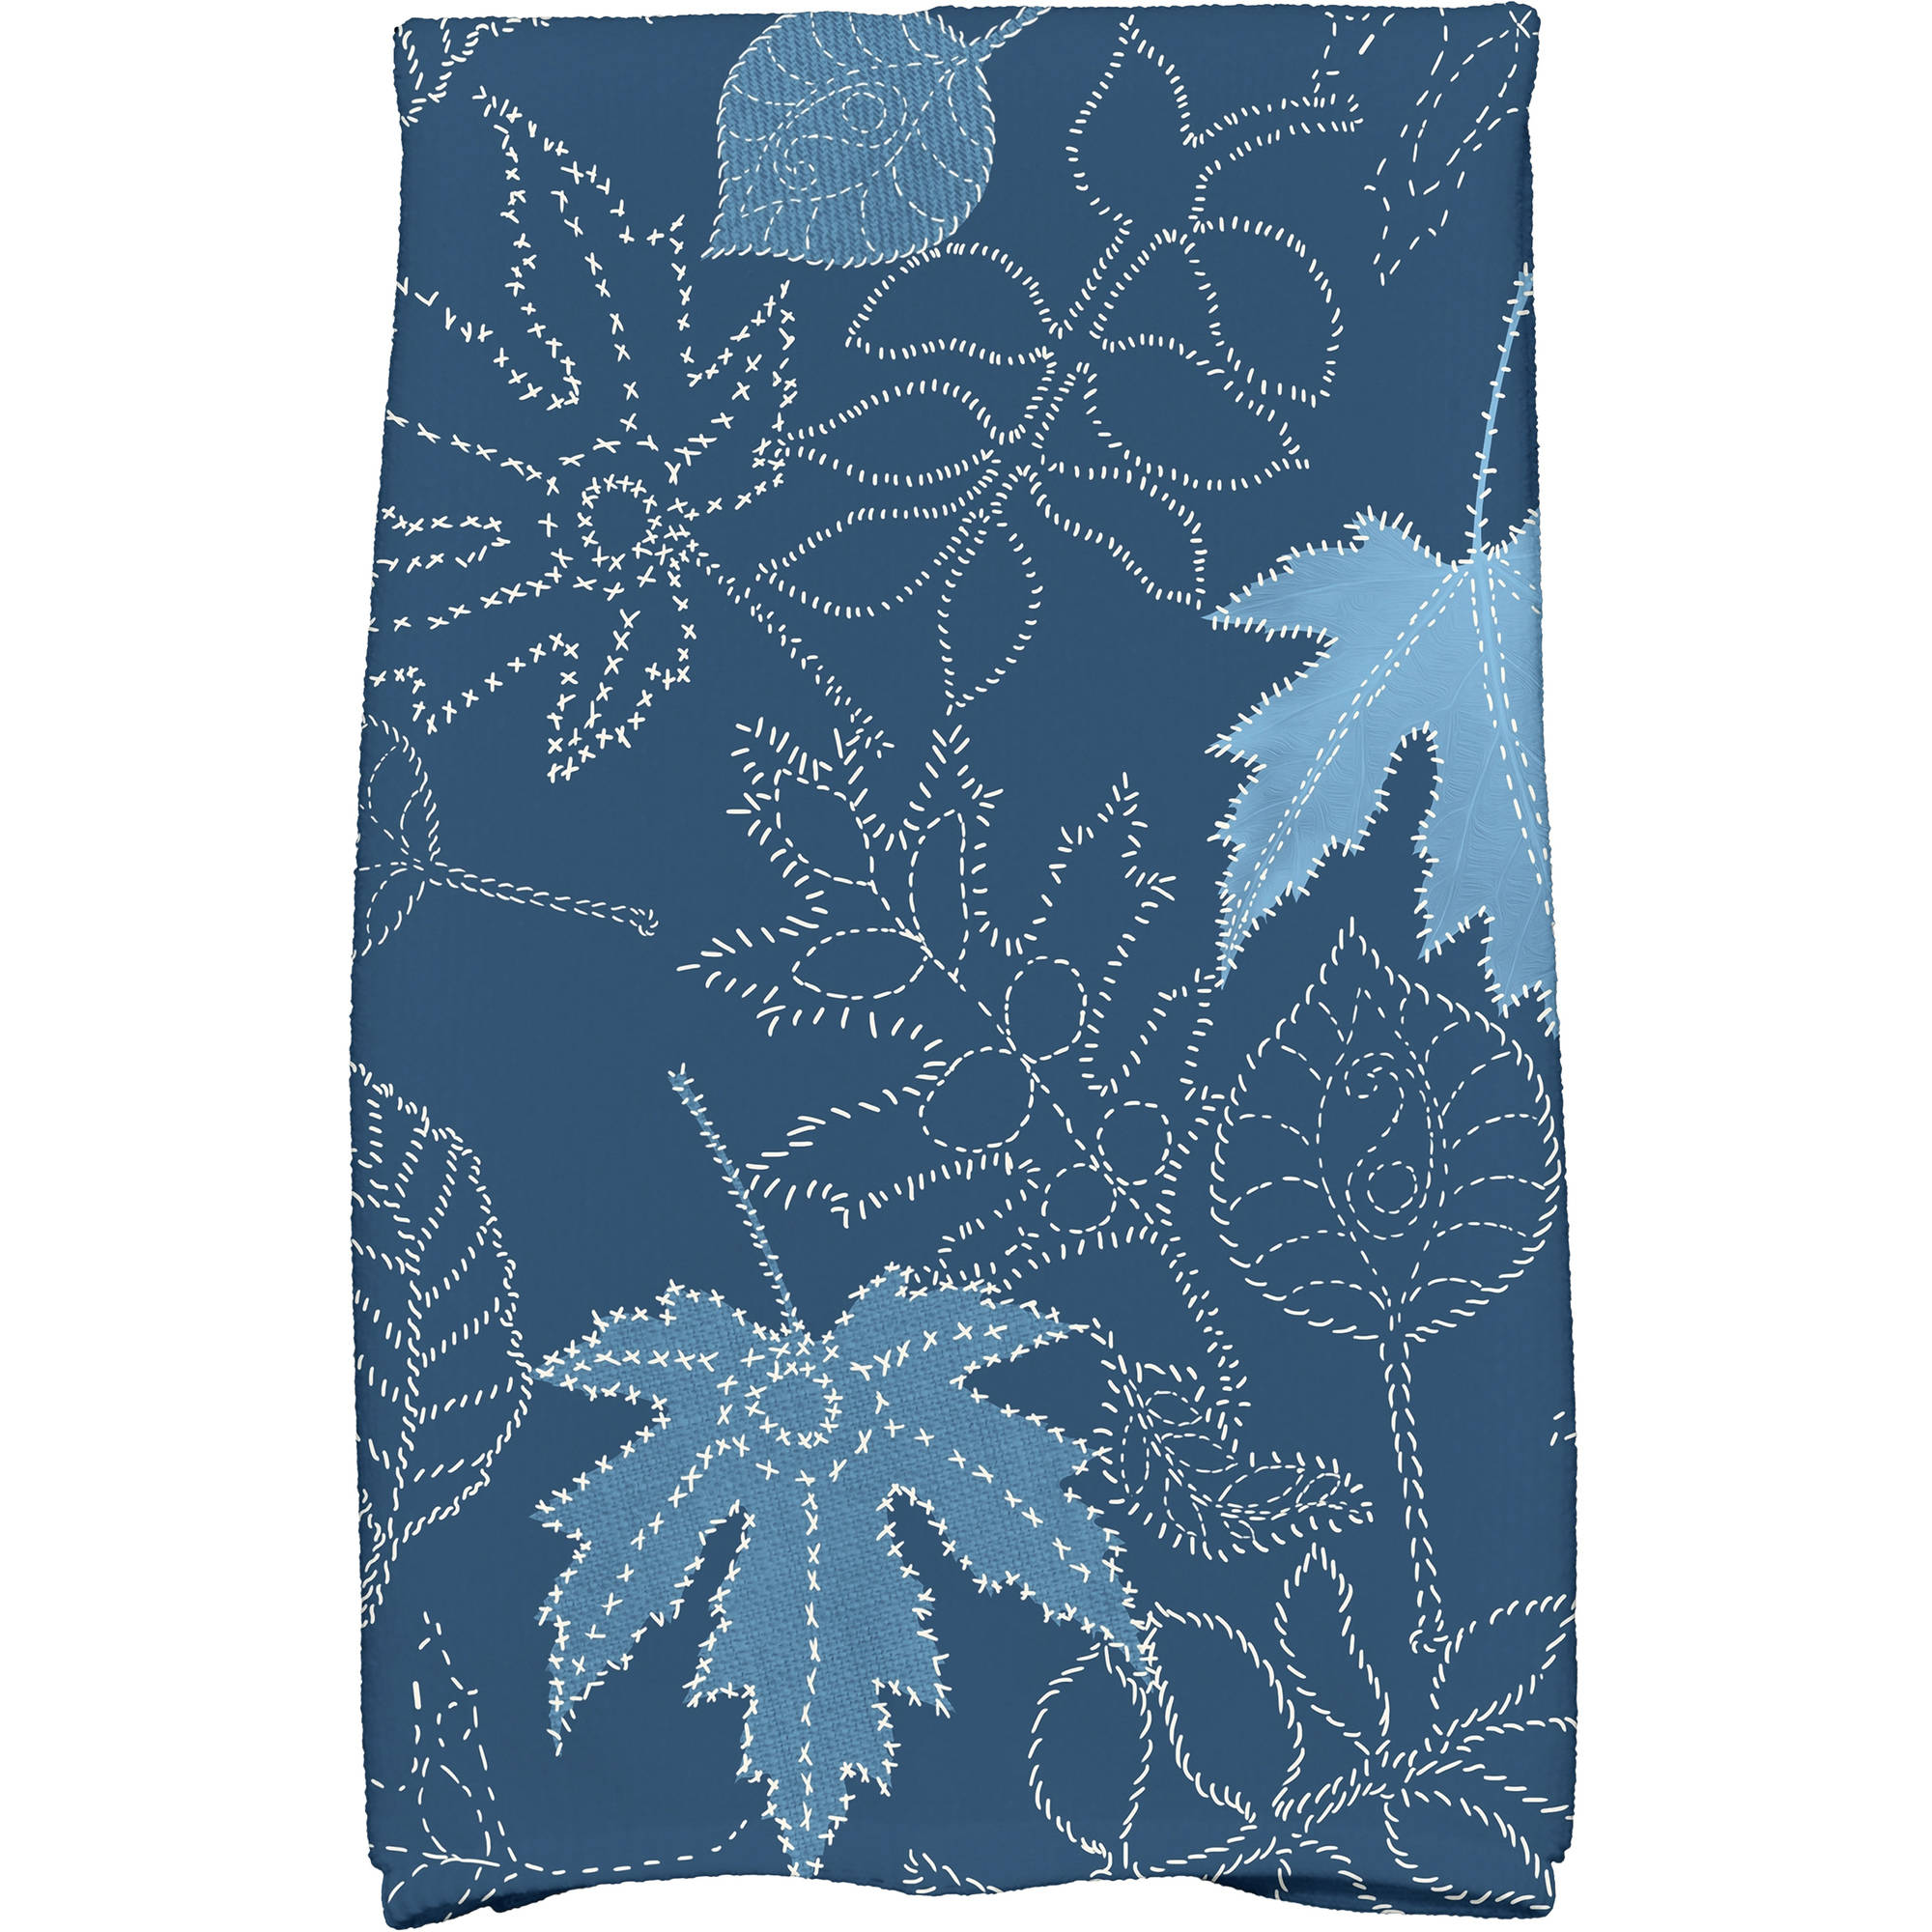 "Simply Daisy 16"" x 25"" Dotted Leaves Floral Print Kitchen Towel by E By Design"